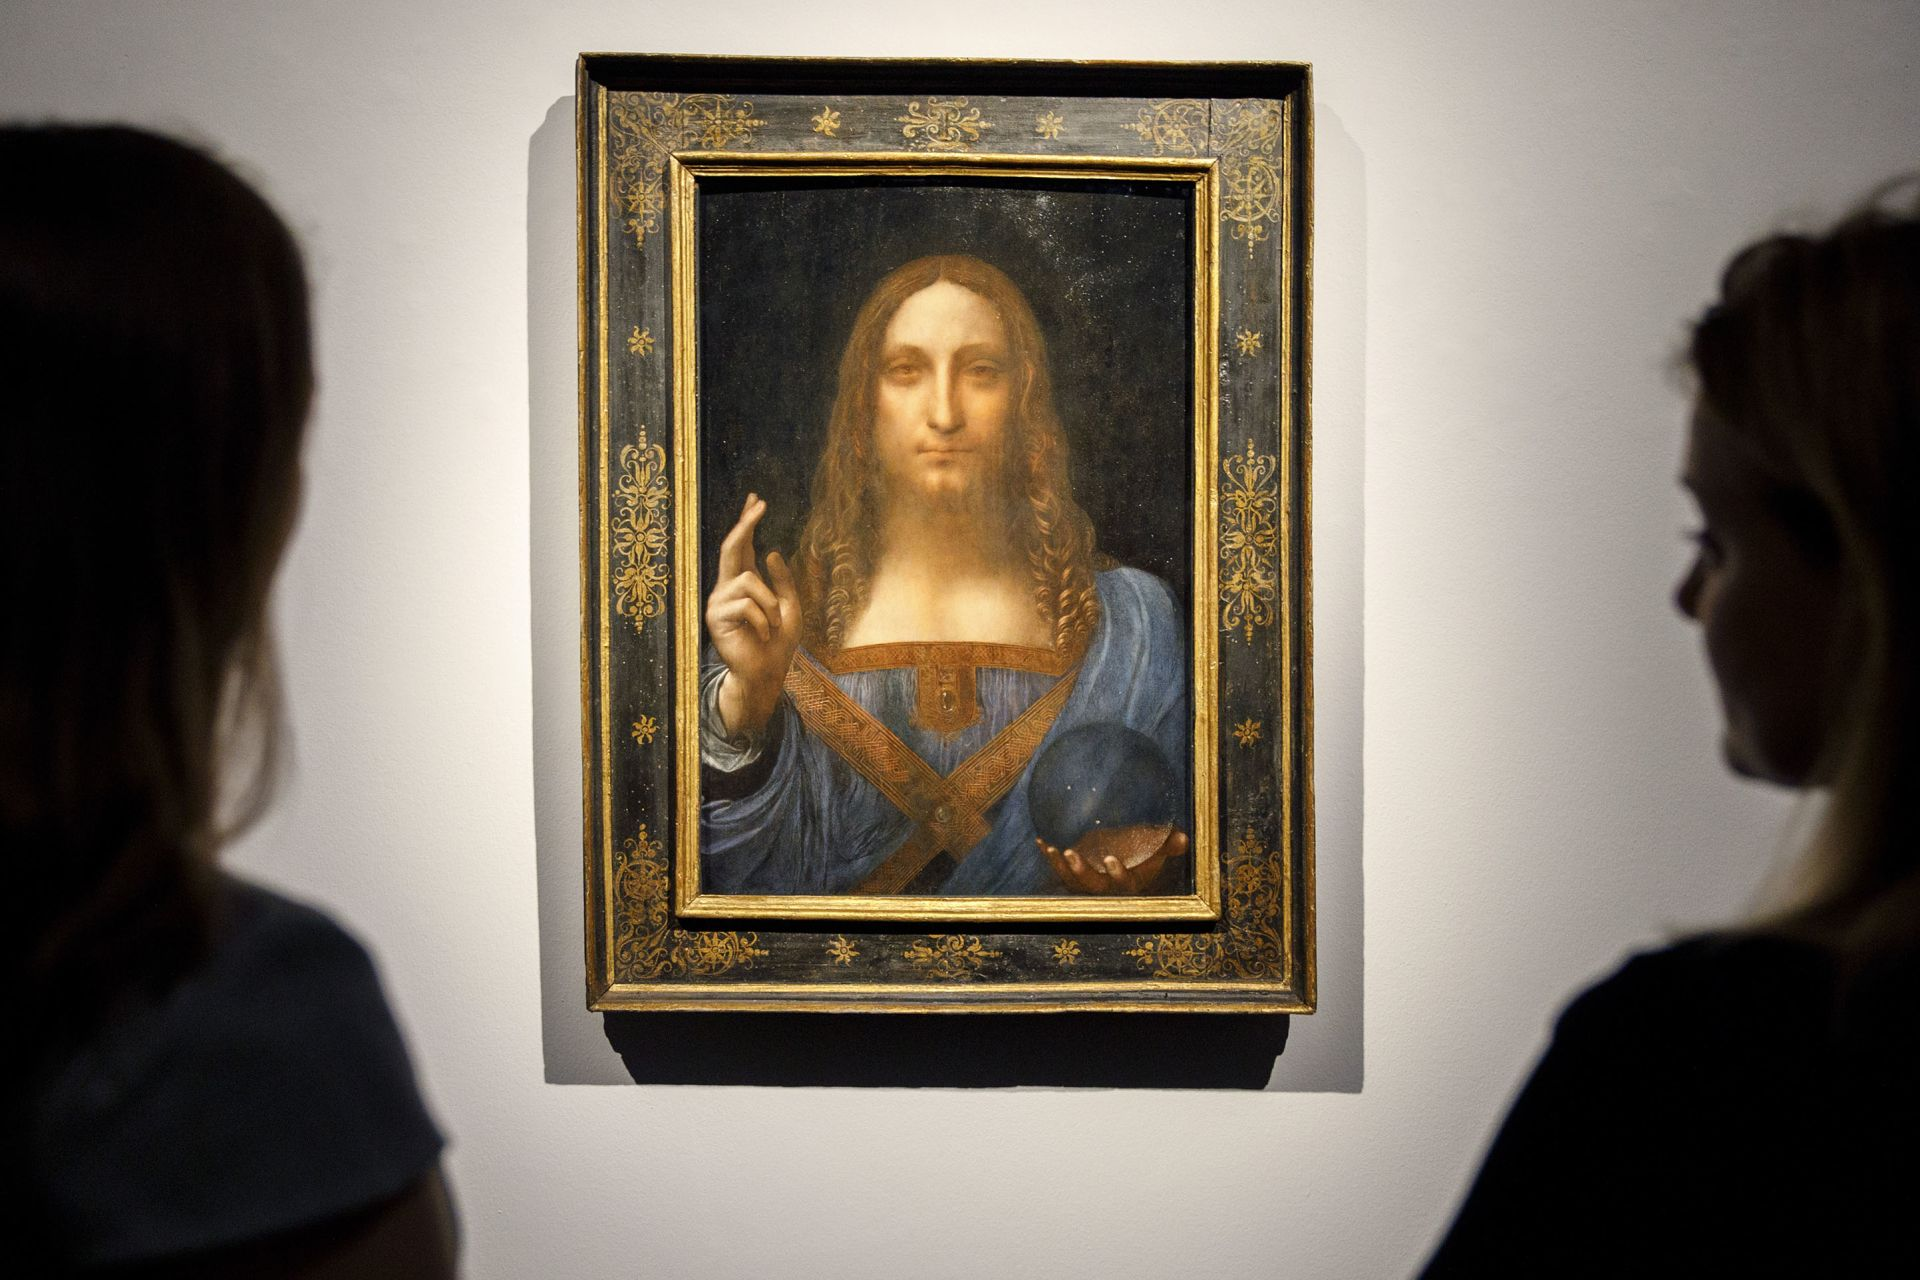 """In this file photo taken on October 24, 2017 Christie's employees pose in front of a painting entitled Salvator Mundi by Italian polymath Leonardo da Vinci at a photocall at Christie's auction house in central London.The Louvre Abu Dhabi said on June 27, 2018 it will unveil its most prized acquisition to date, a Leonardo da Vinci painting that sold for nearly half a billion dollars at auction, on September 18. The 500-year-old """"Salvator Mundi"""" painting depicting Jesus Christ, believed to be the wor"""